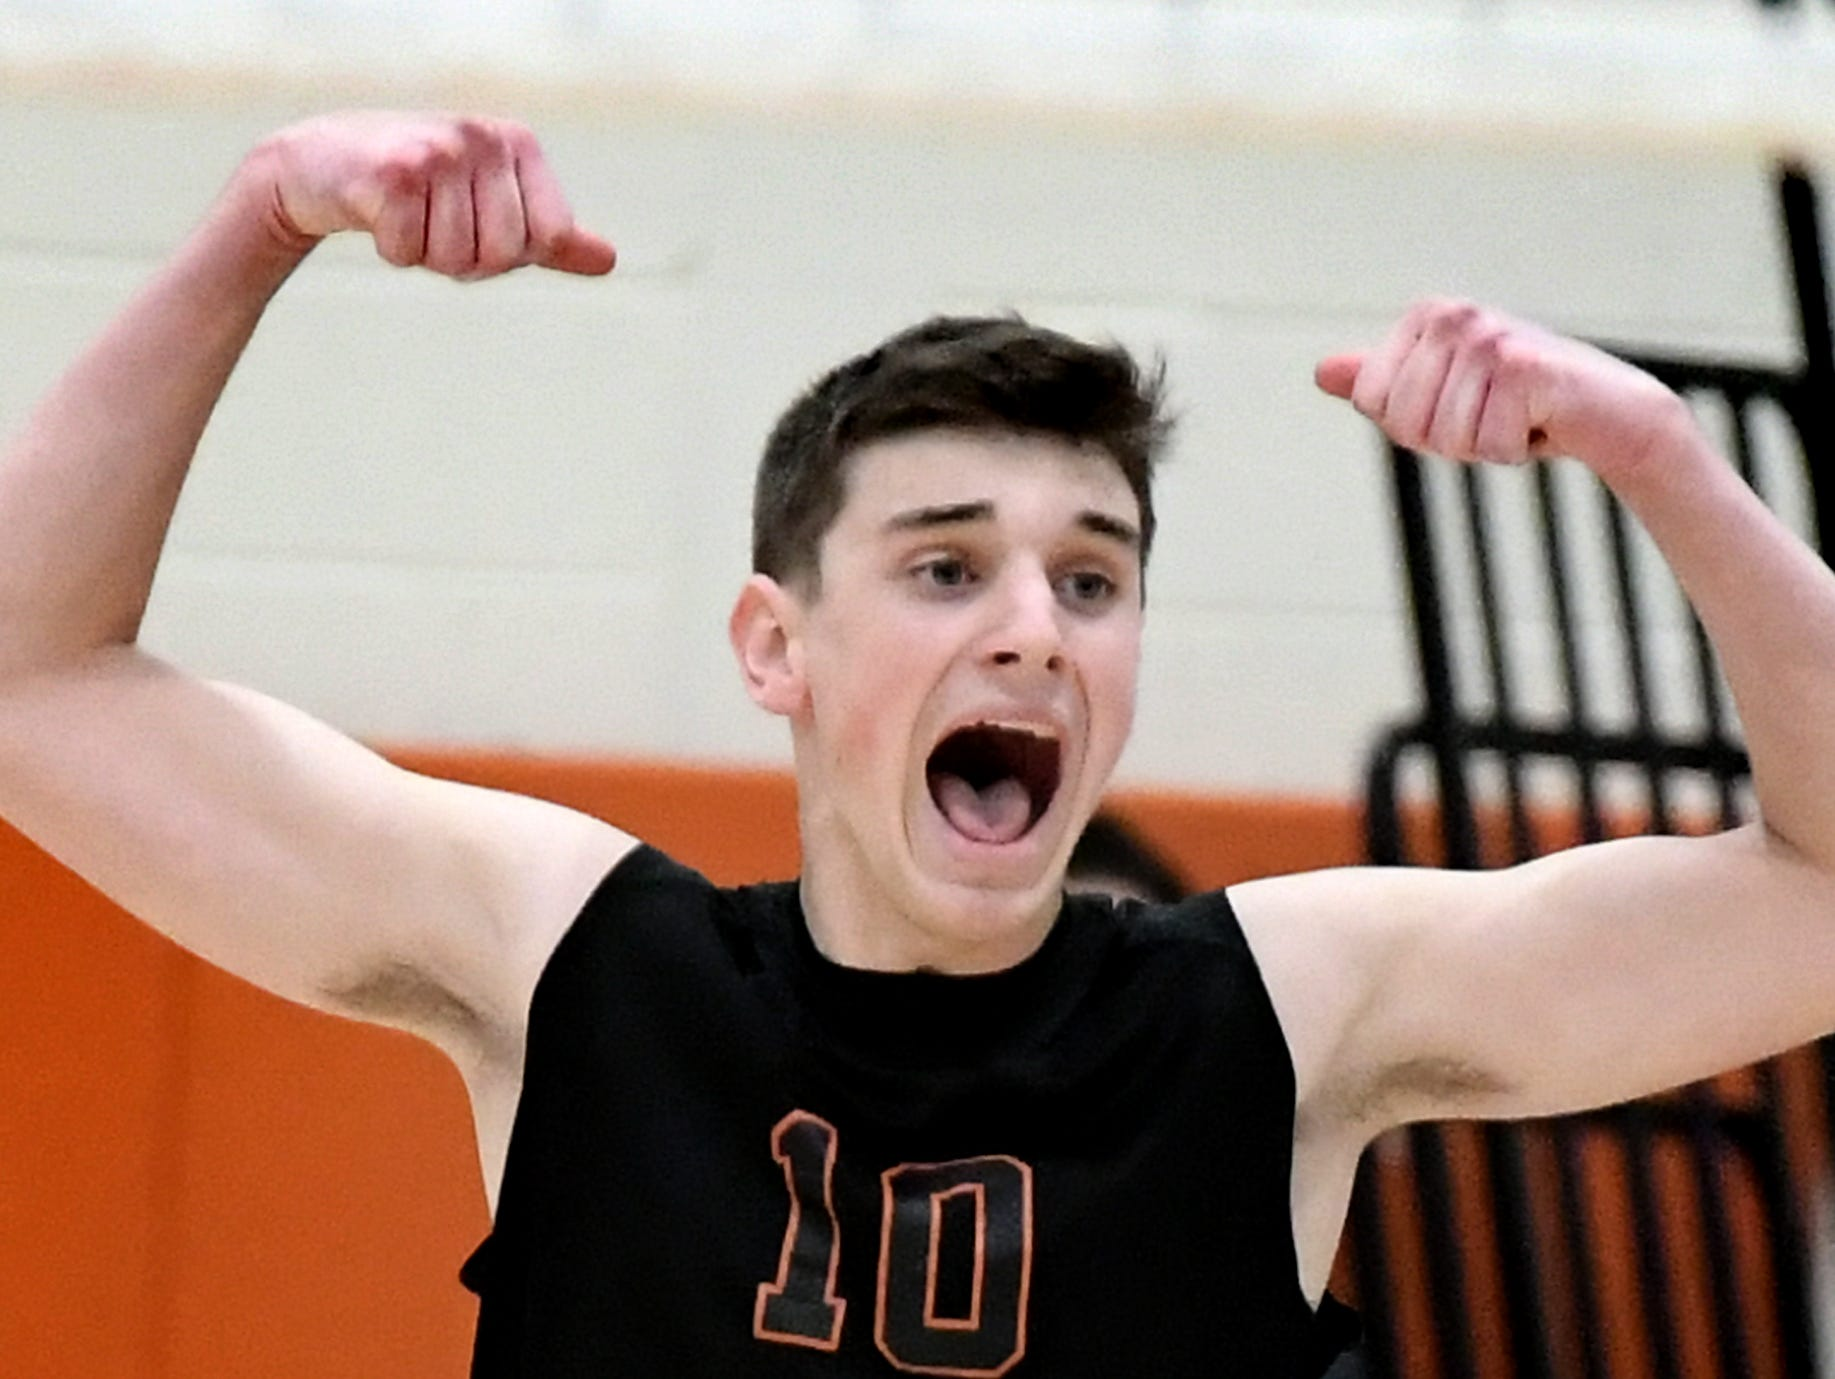 Northeastern's Brady Lemen celebrates a point over host Central York Tuesday, May 7, 2019. The Bobcats earned the York-Adams League regular-season title with the 3-1 win. Bill Kalina photo